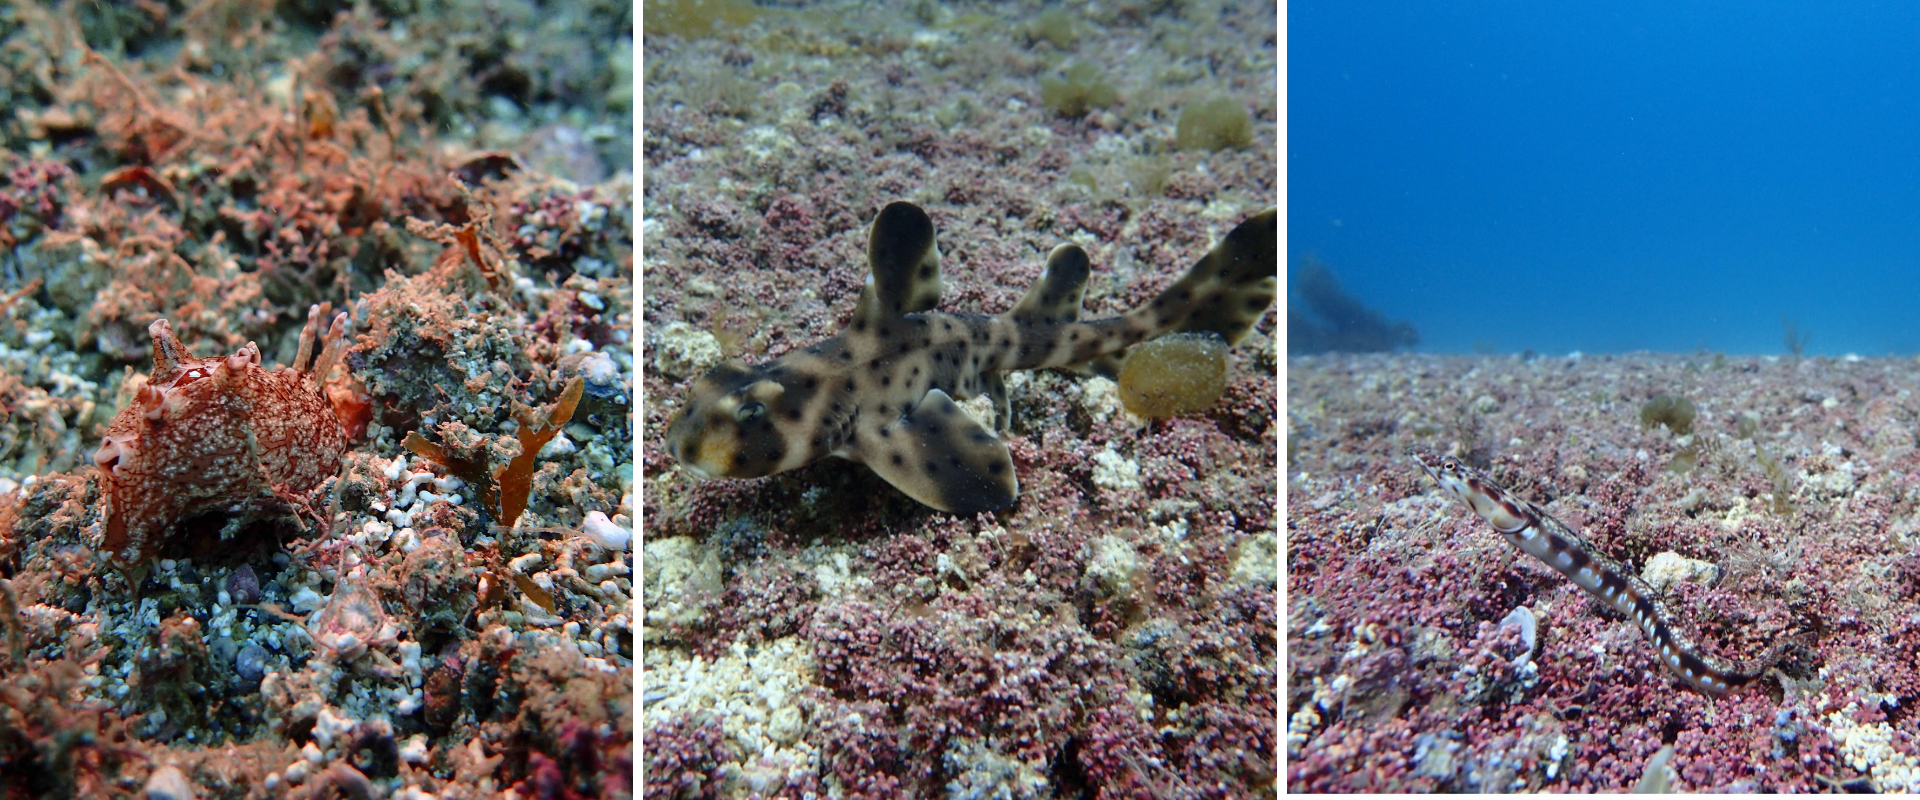 three photos of organisms found in rhodolith beds, a sea slug, a juvenile horn shark, and a small, skinny fish